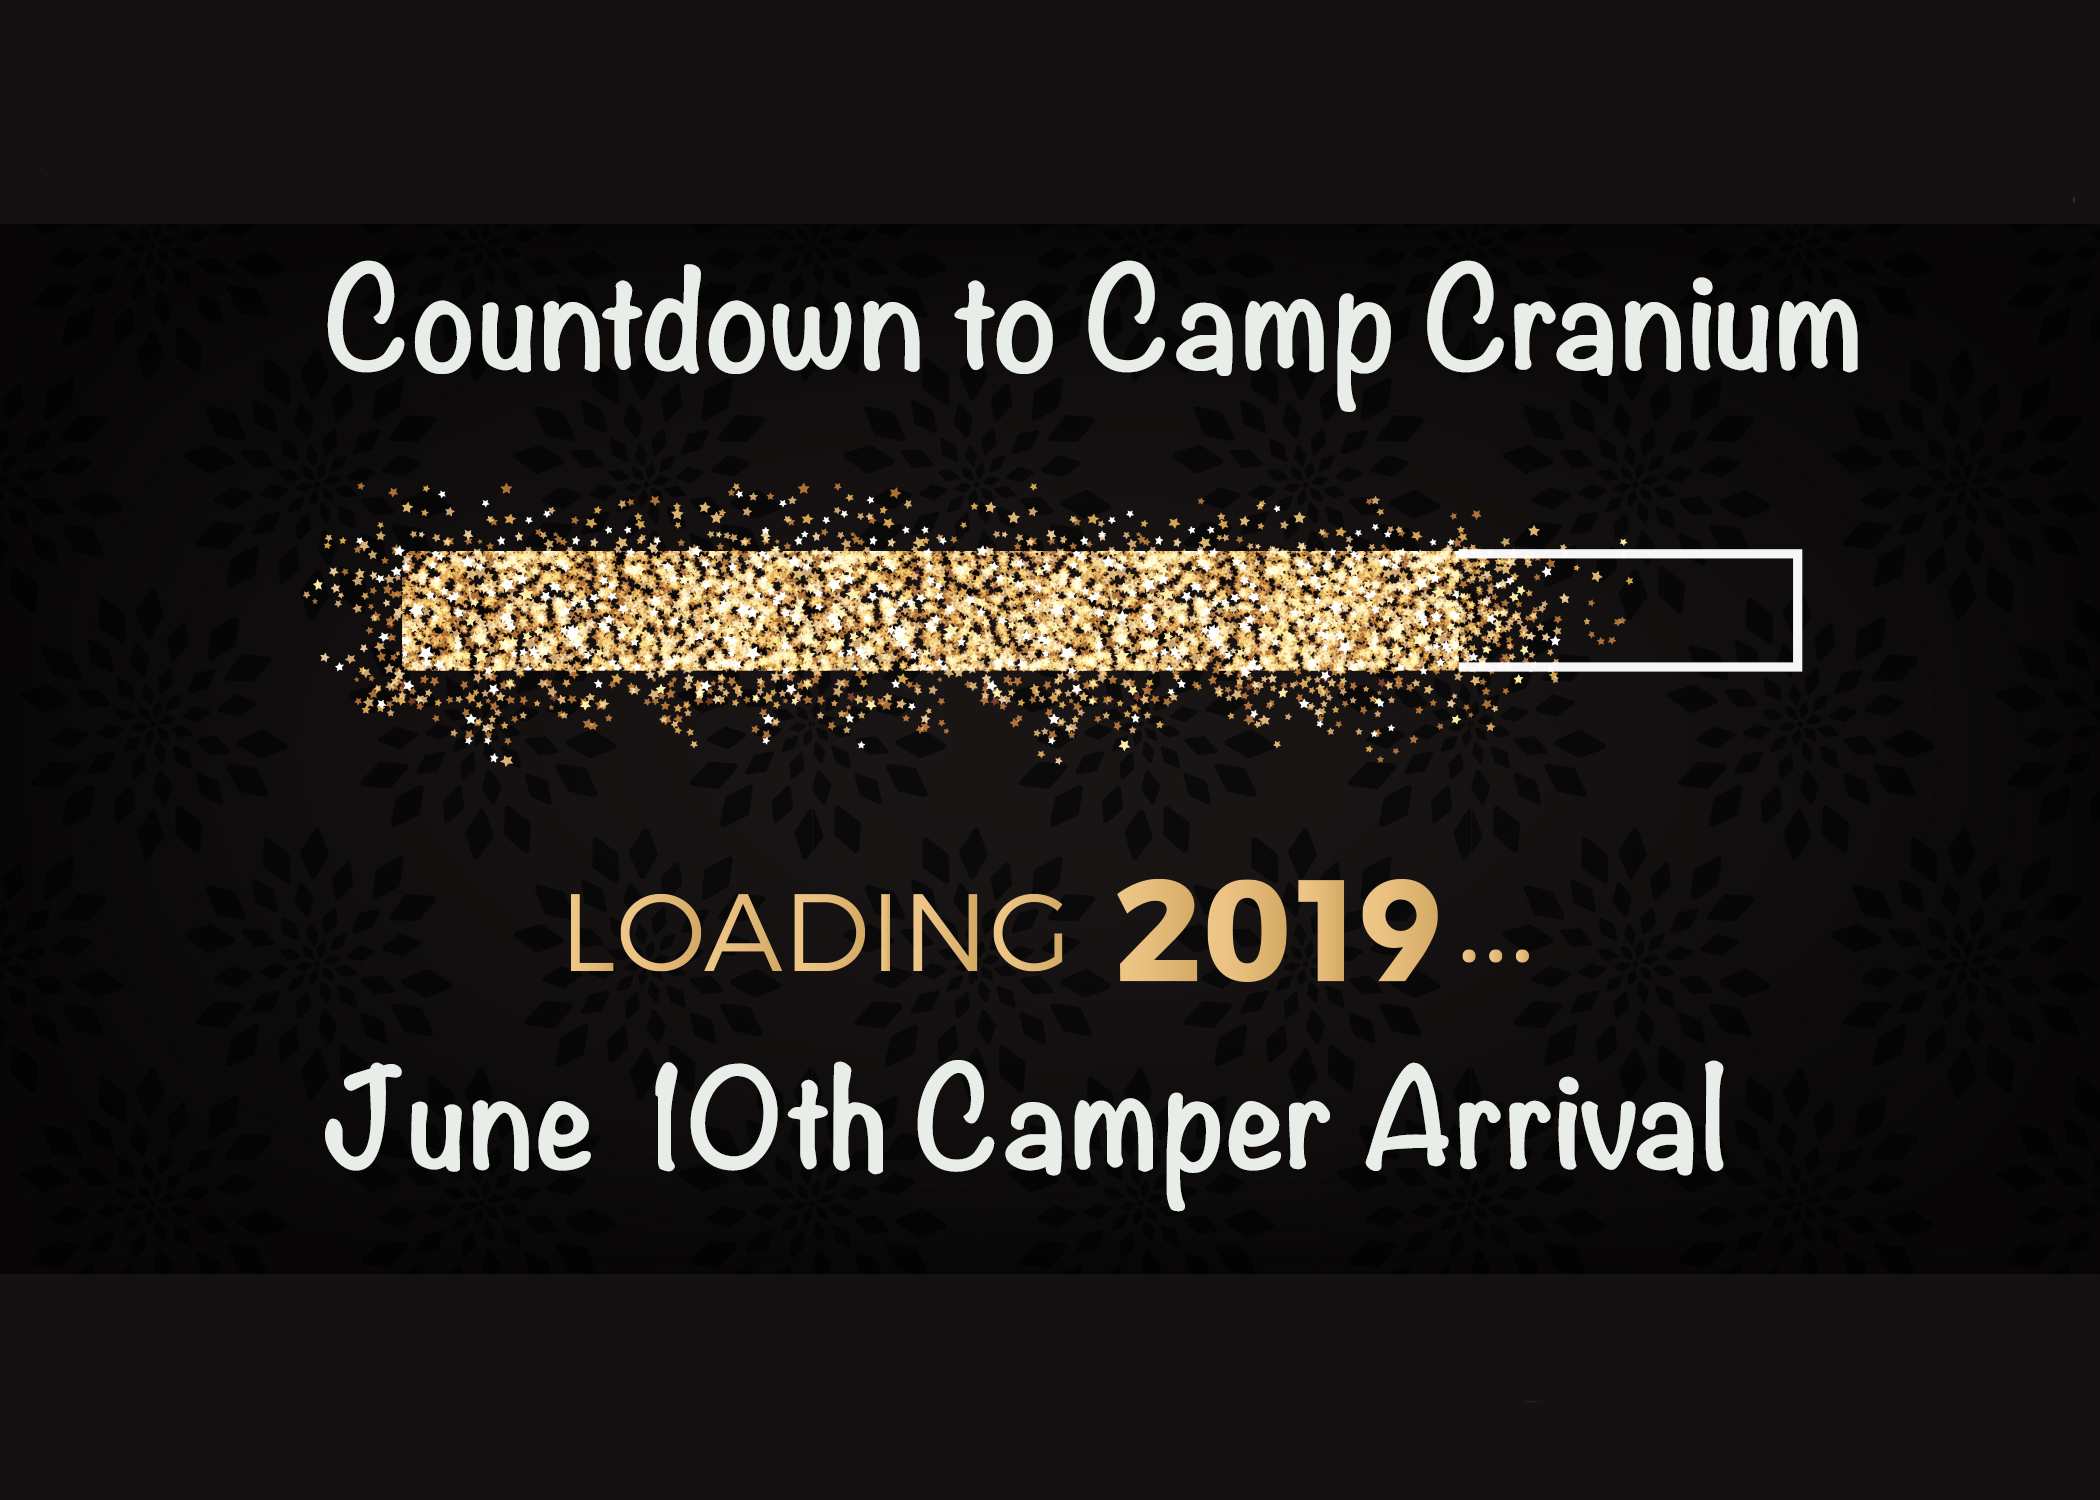 Camp Cranium Countdown…